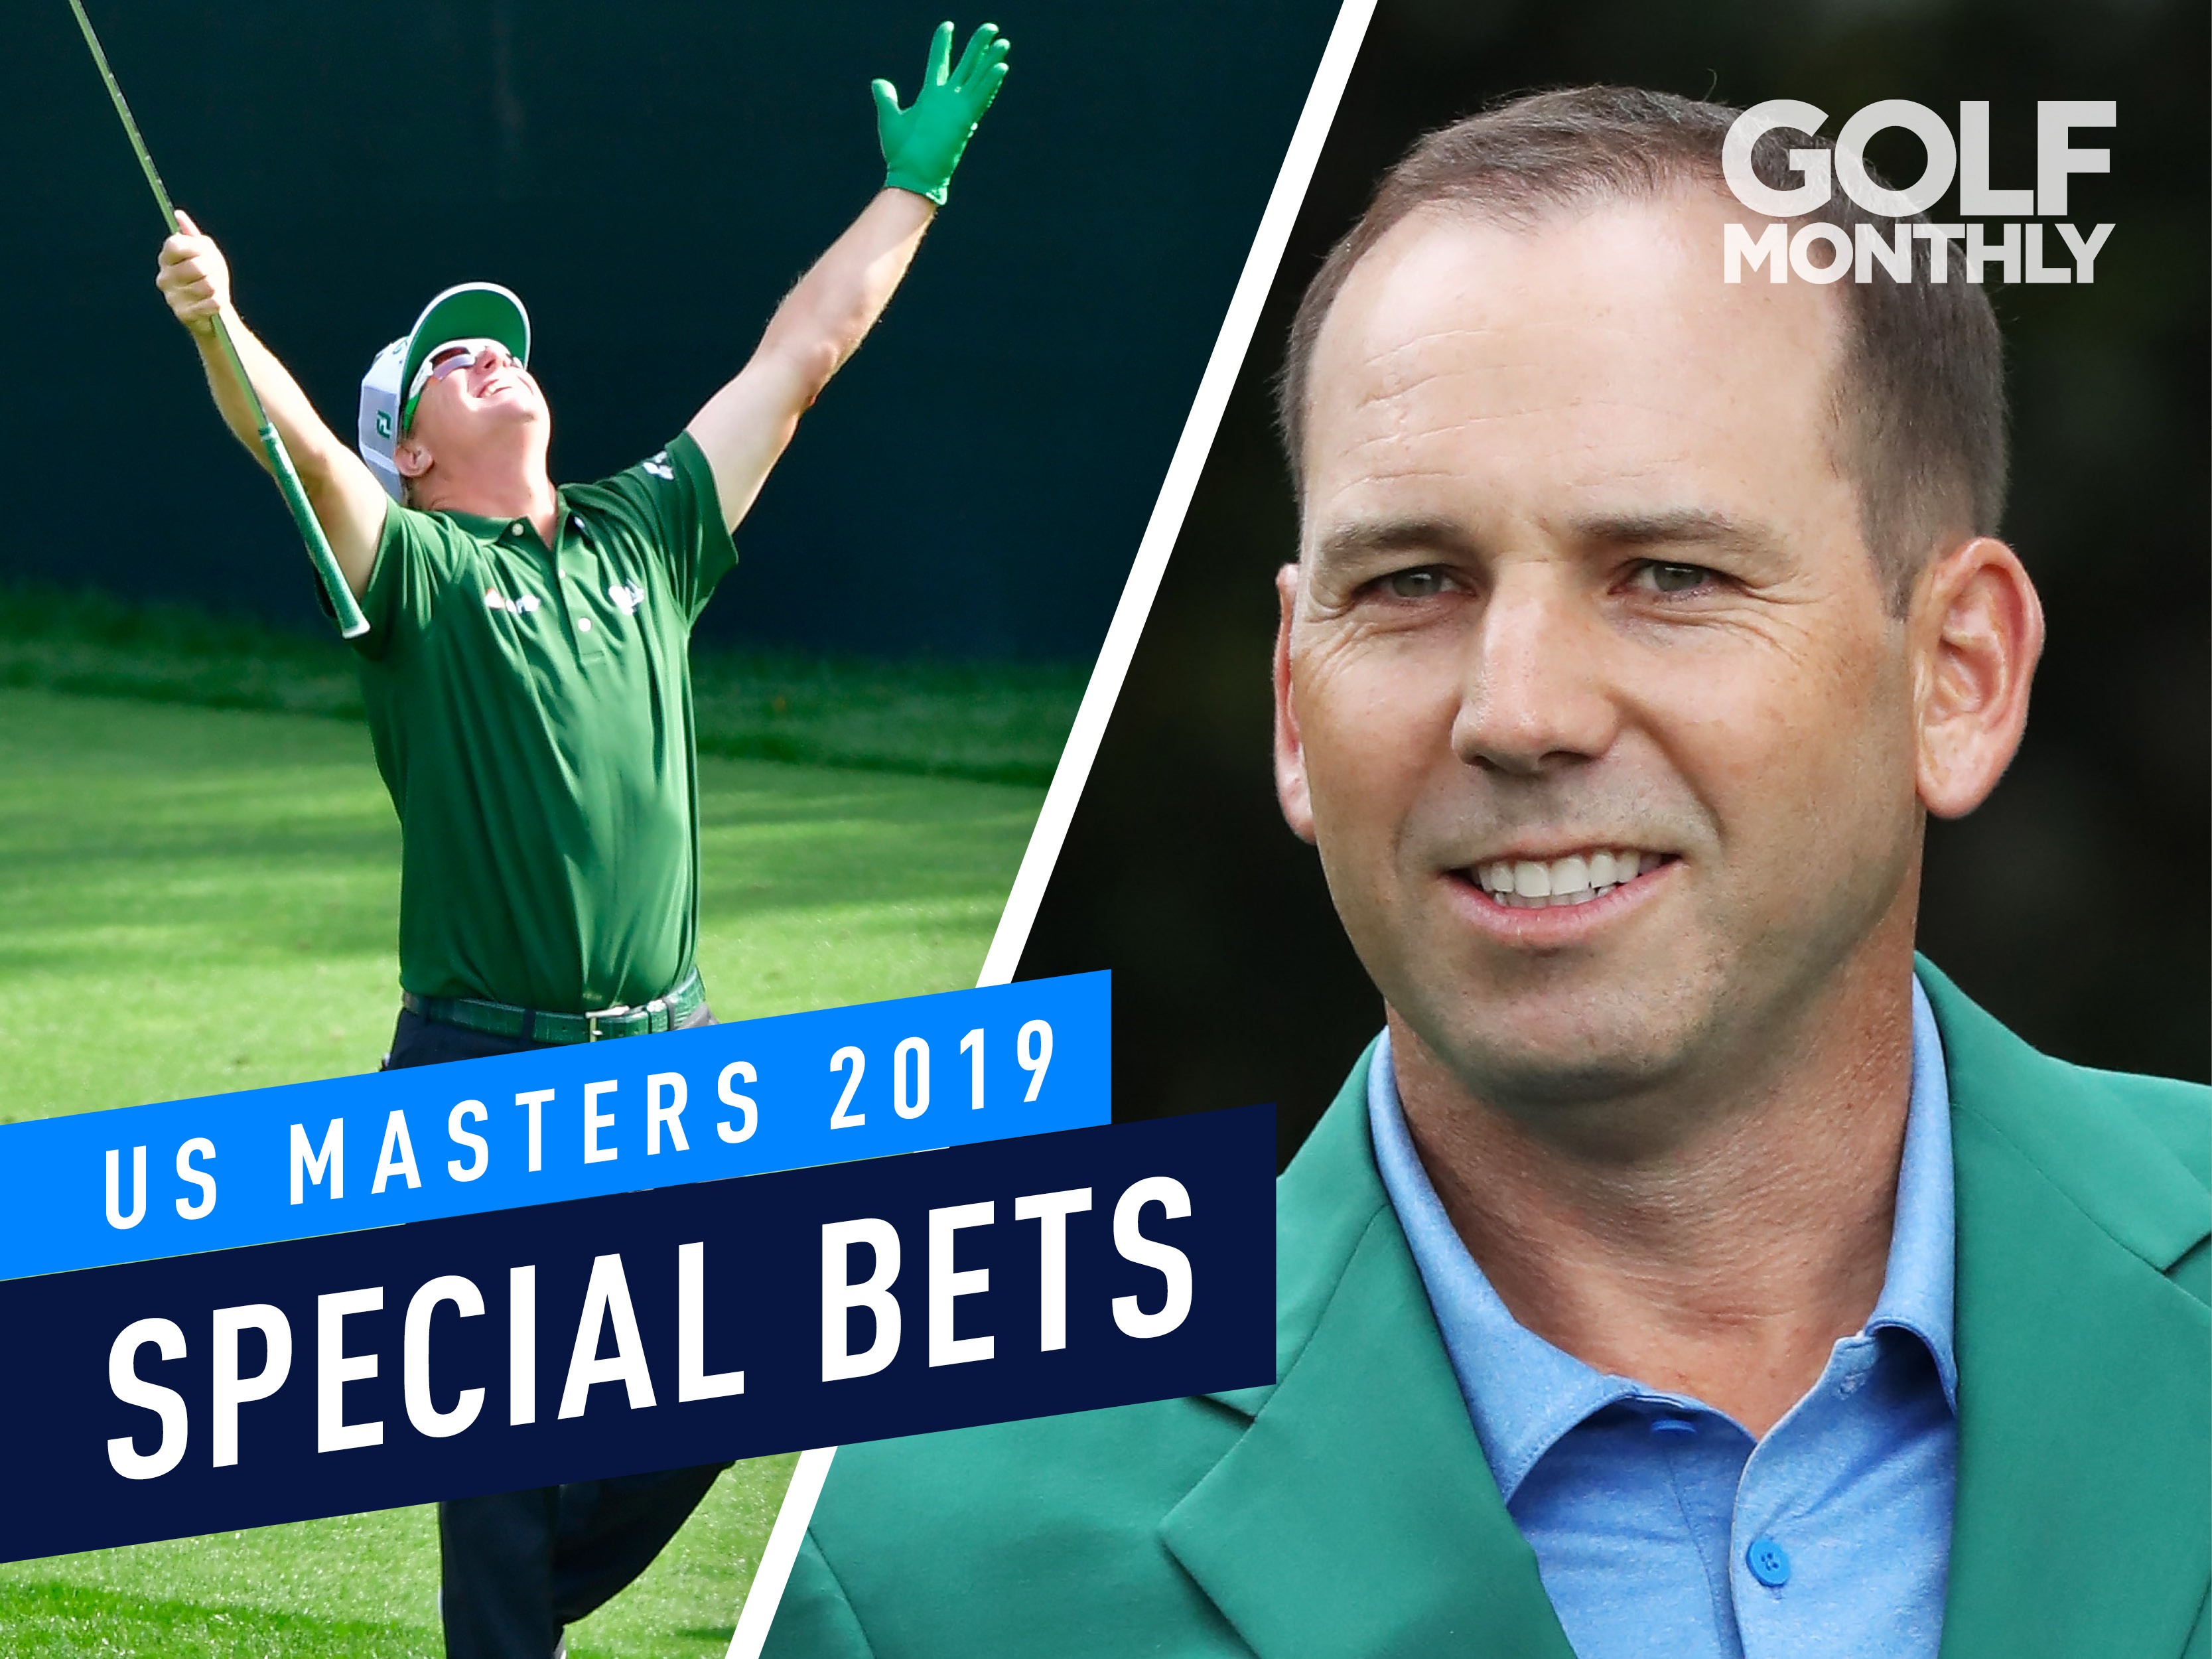 Us masters betting offers cy vegas sports betting tax